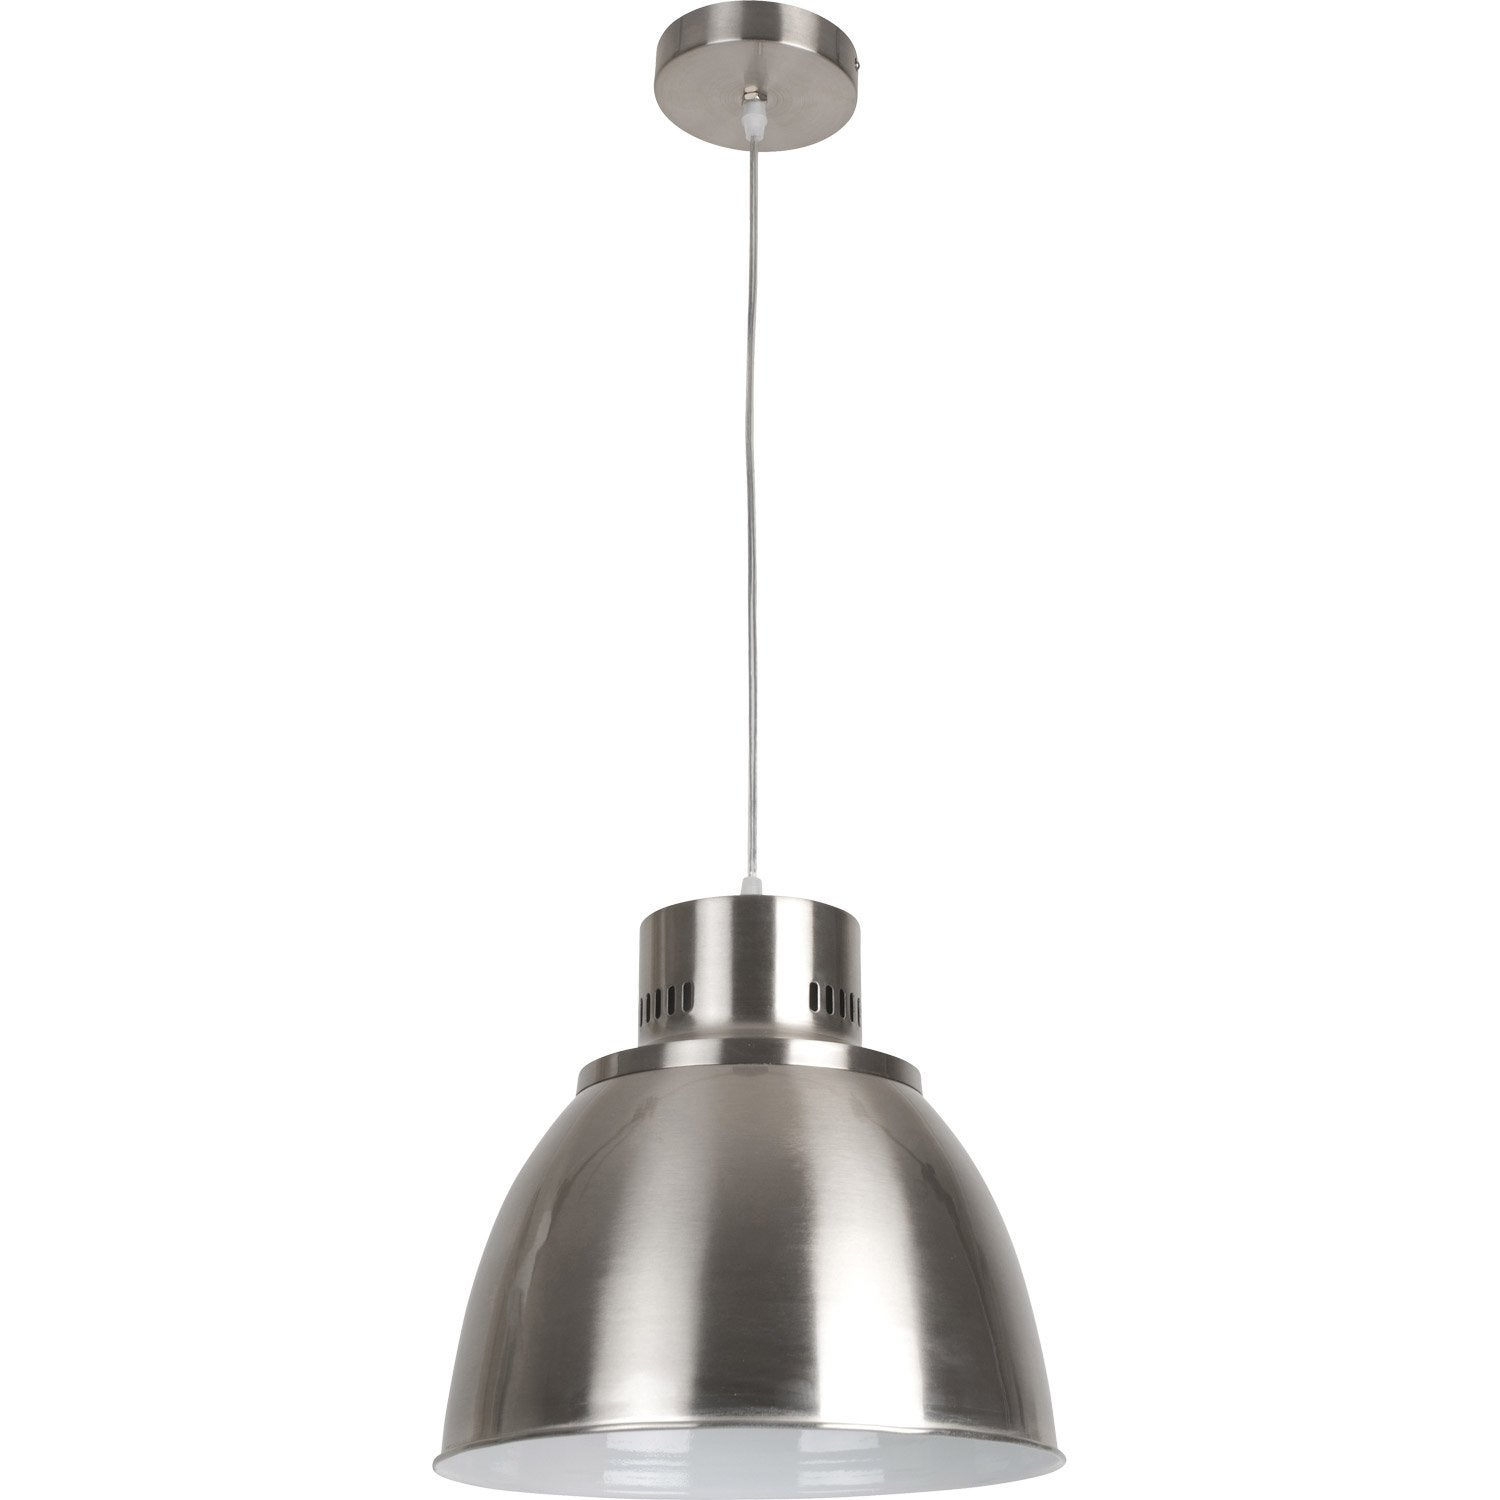 Suspension industriel soho m tal chrom 1 x 60 w corep leroy merlin - Suspension new york leroy merlin ...